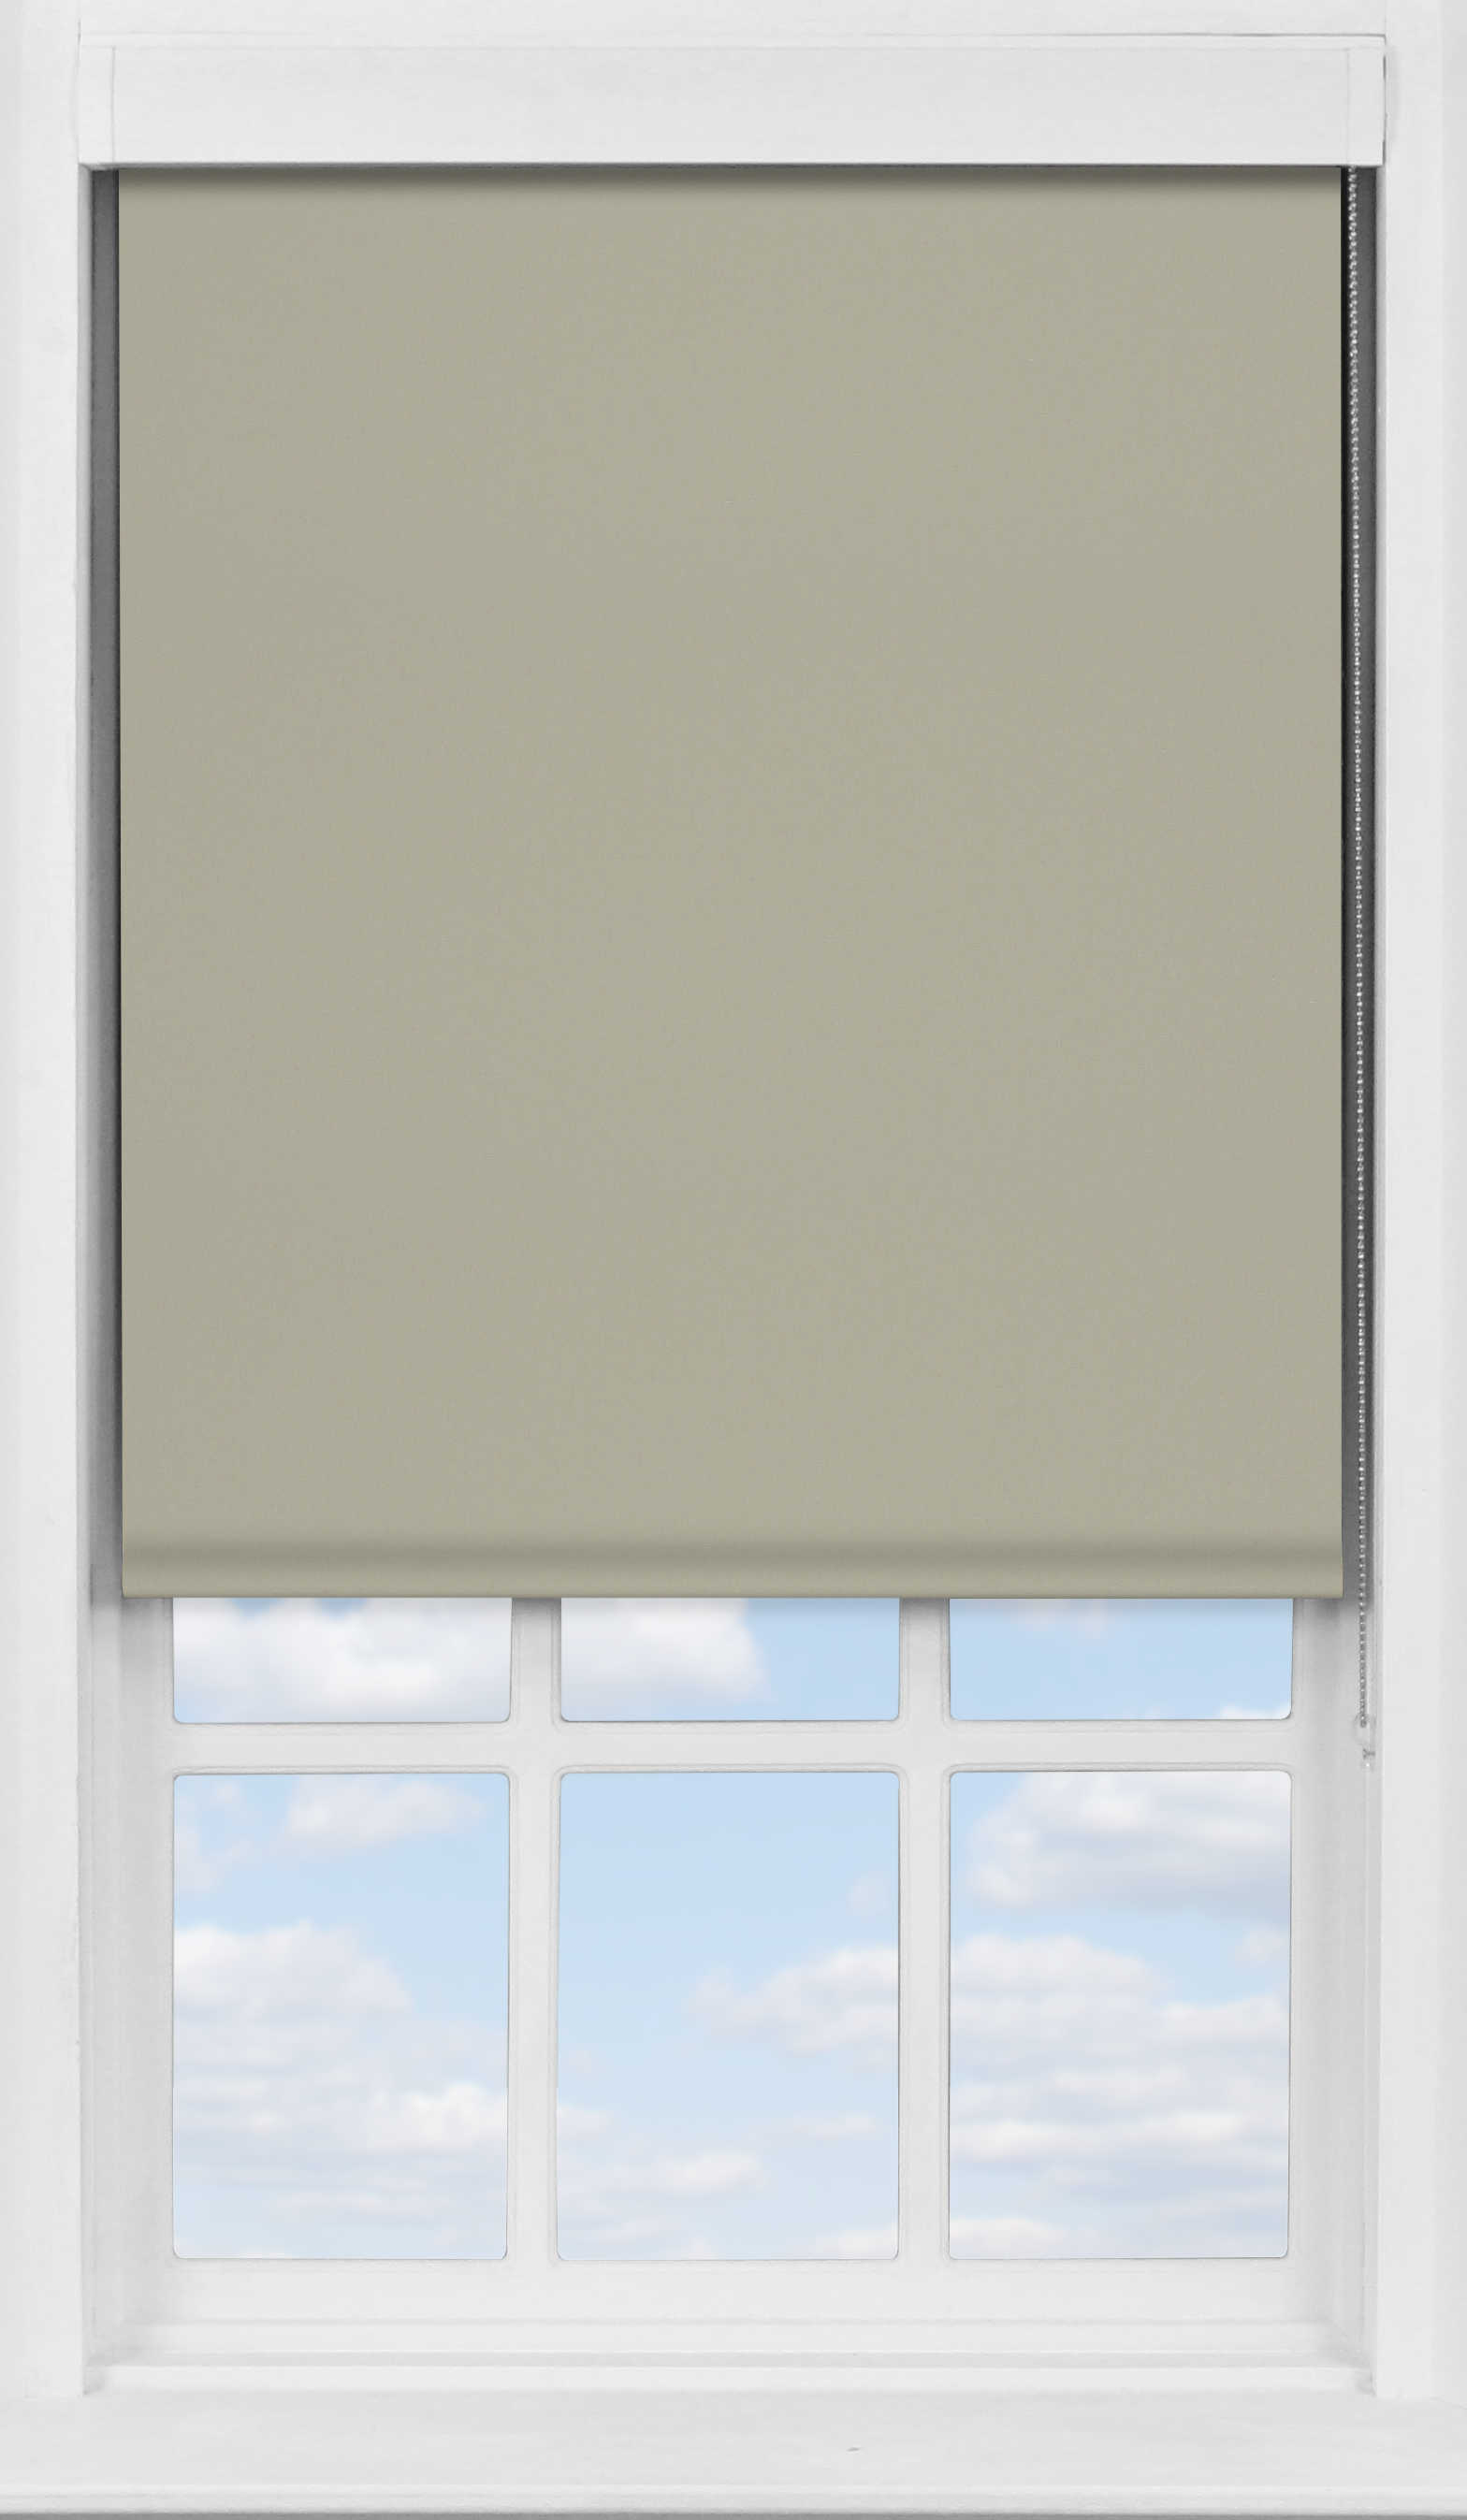 Premium Roller Blind in Gentle Mist Blackout